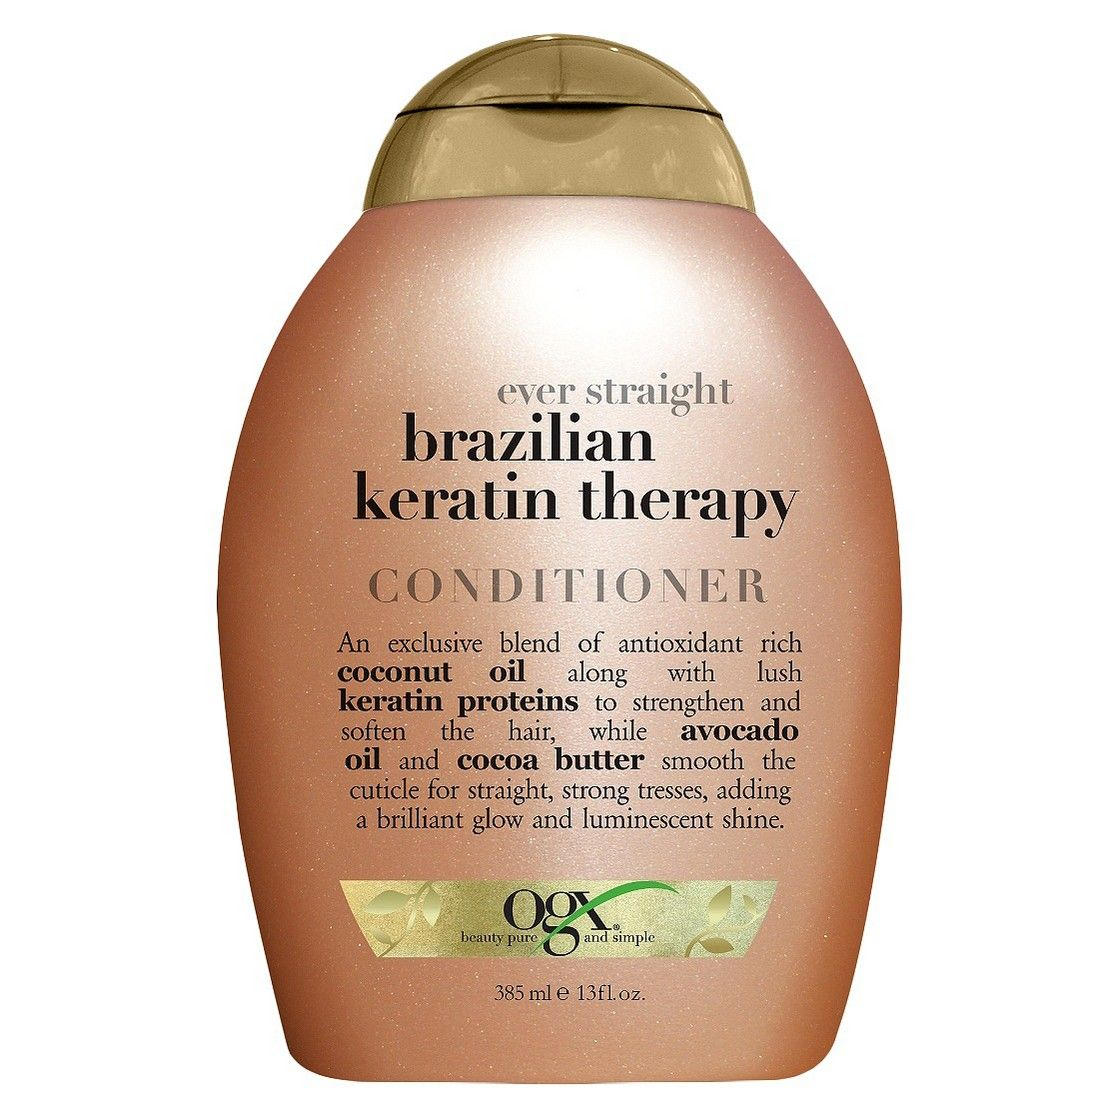 OGX Ever-Straight Brazilian Keratin Therapy Conditioner 13 oz.